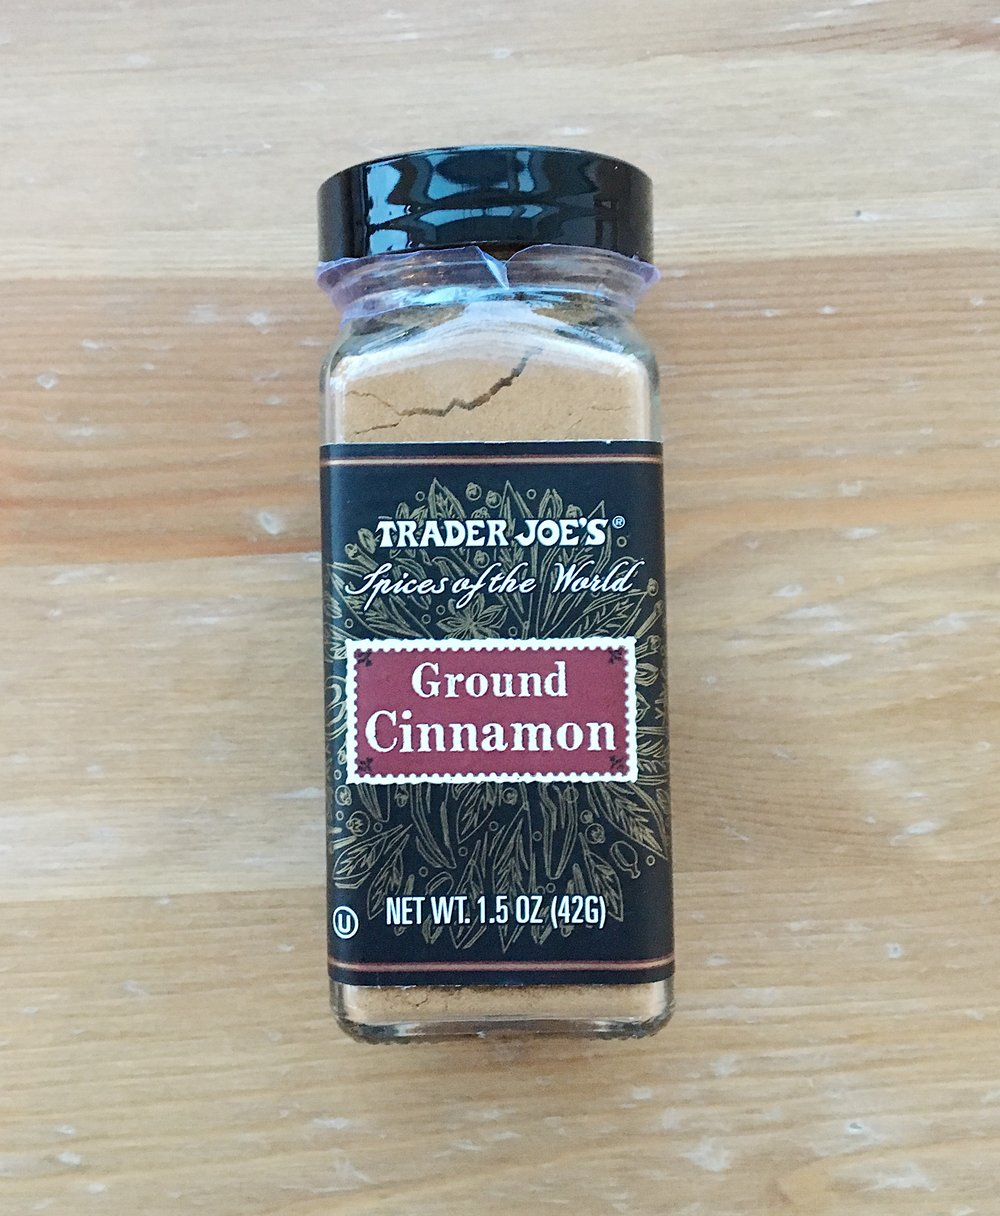 Trader Joe's Cinnamon